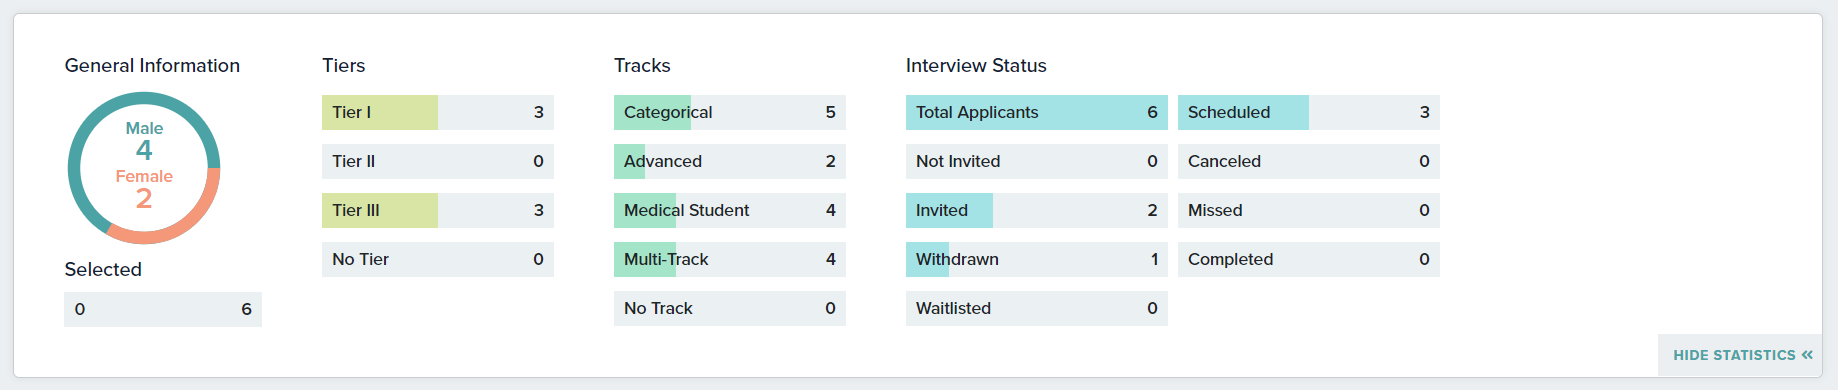 Applicant_Dashboard_Program_1.png